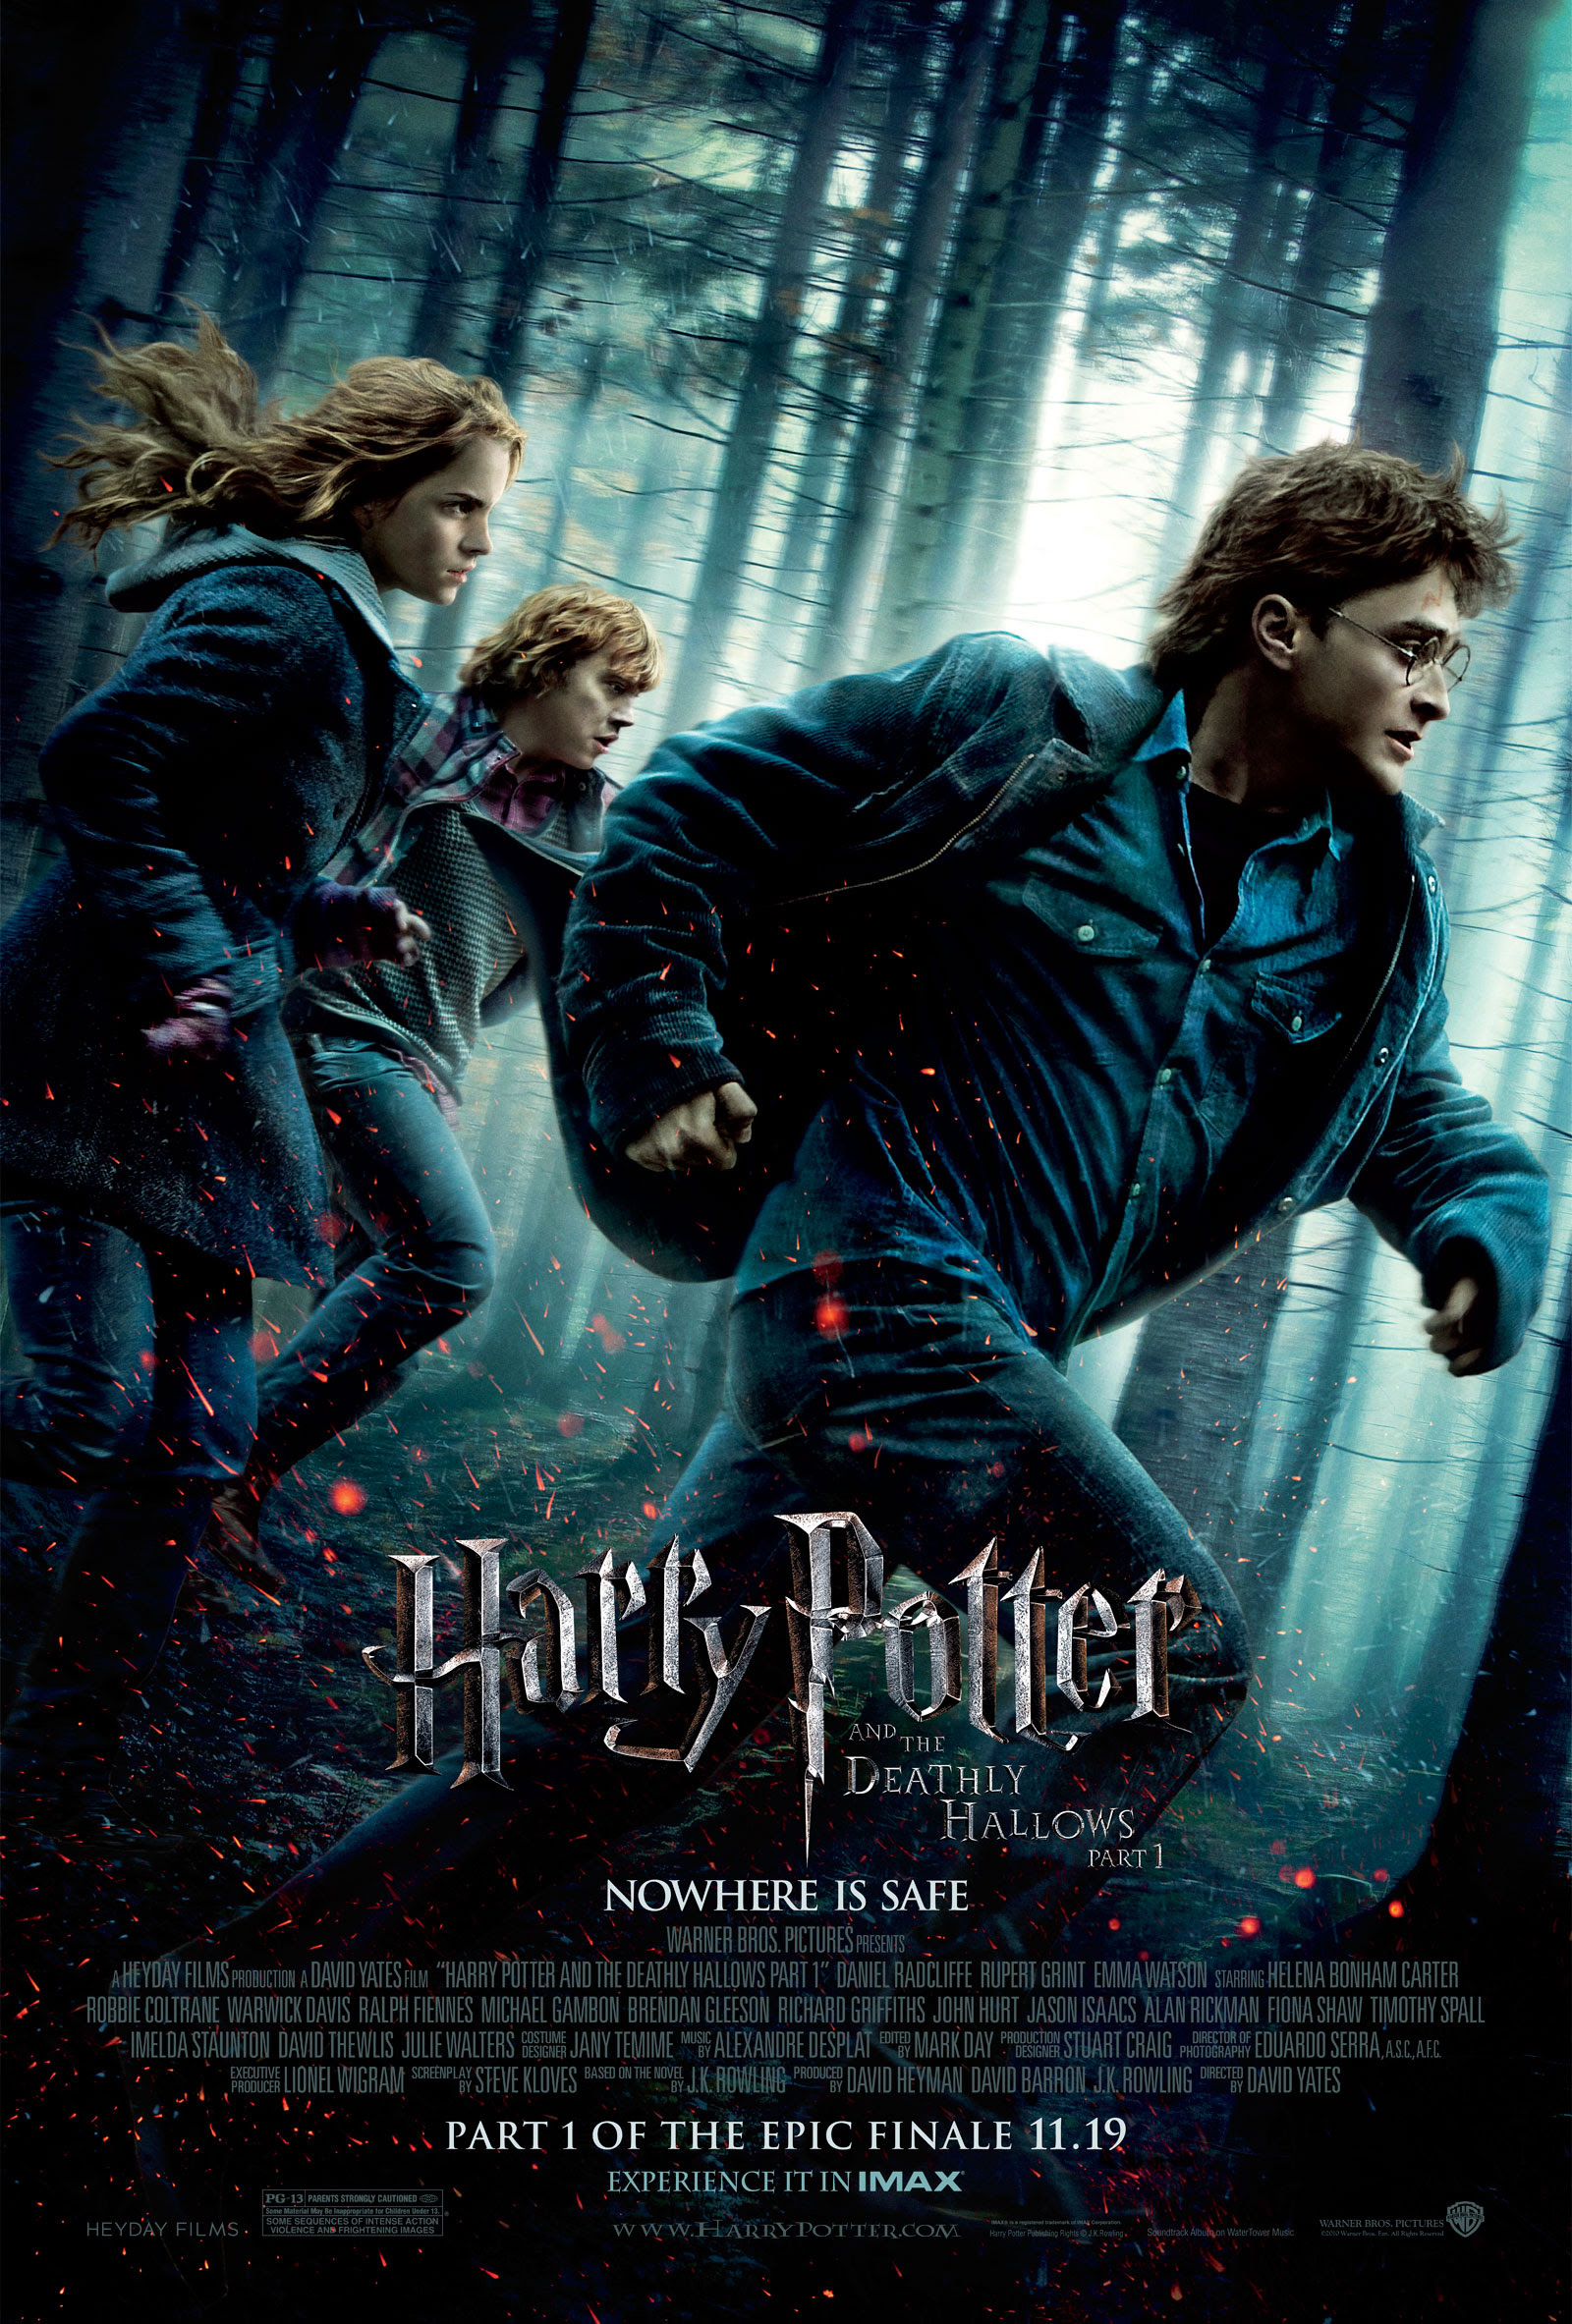 Harry Potter And The Deathly Hallows Movie Poster Desktop